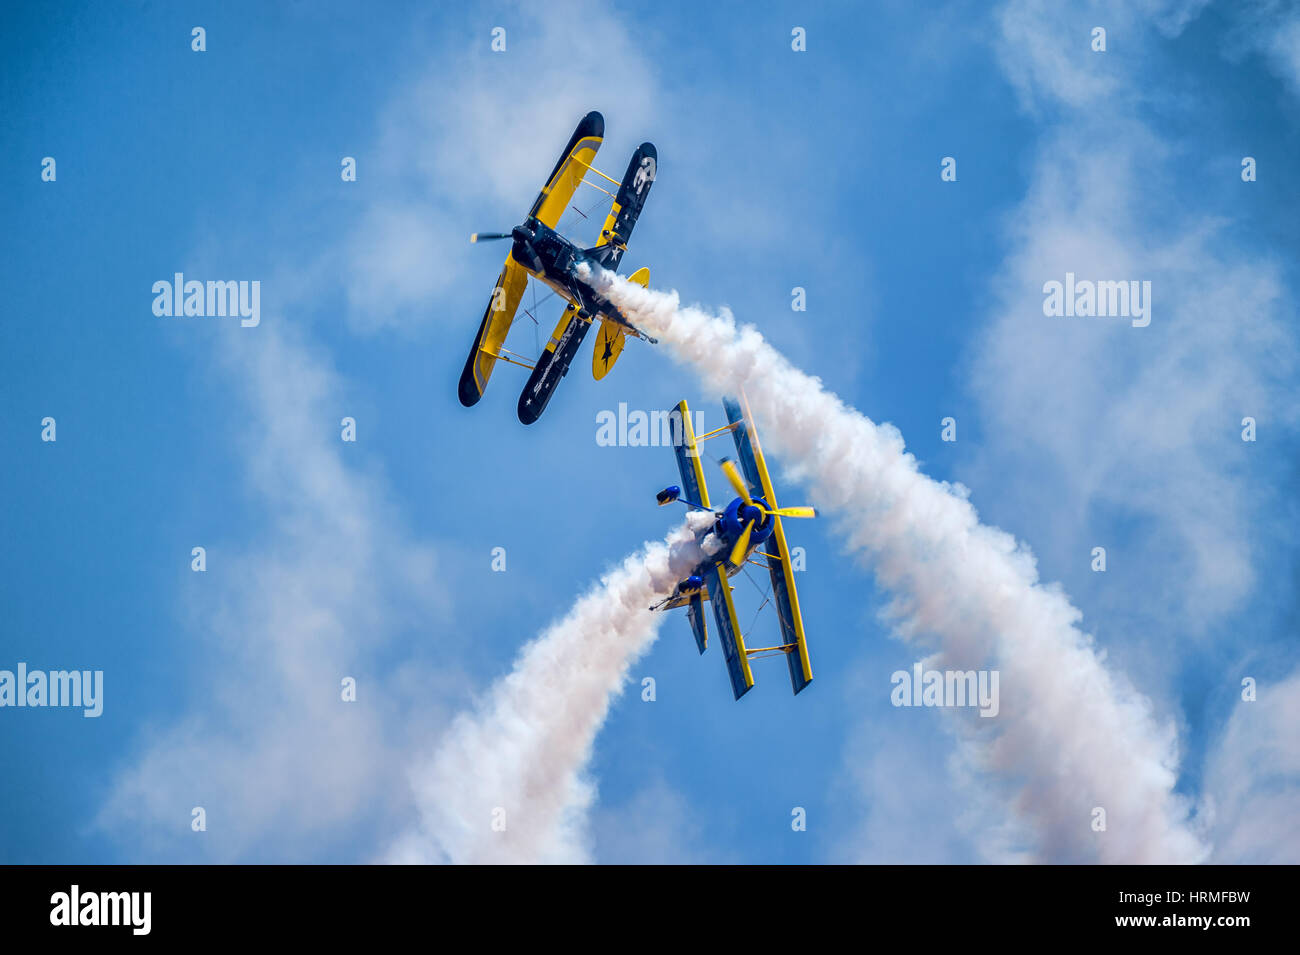 Skycat Wingwalkers' from the Scandinavian Airshow aerobatic team perform at the opening ceremony of Aero India - Stock Image